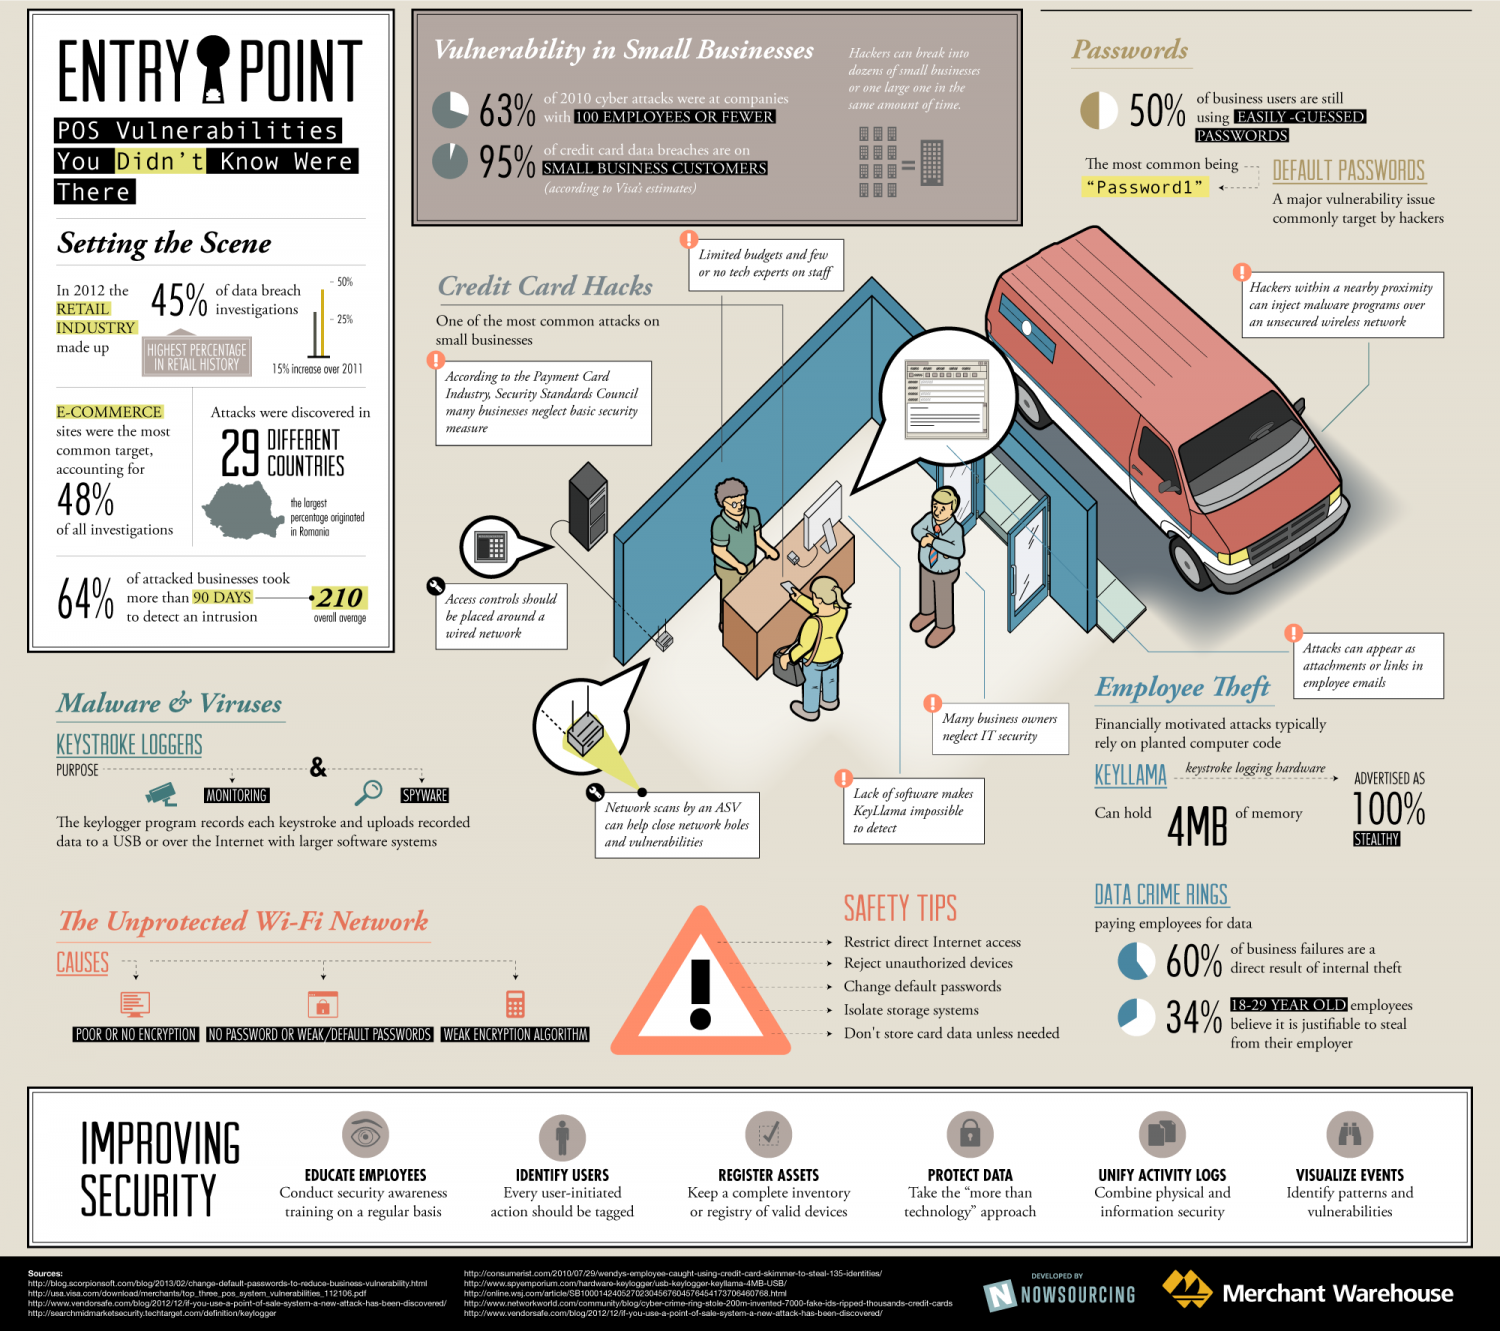 Where is Your Point of Sale System Vulnerable? Infographic